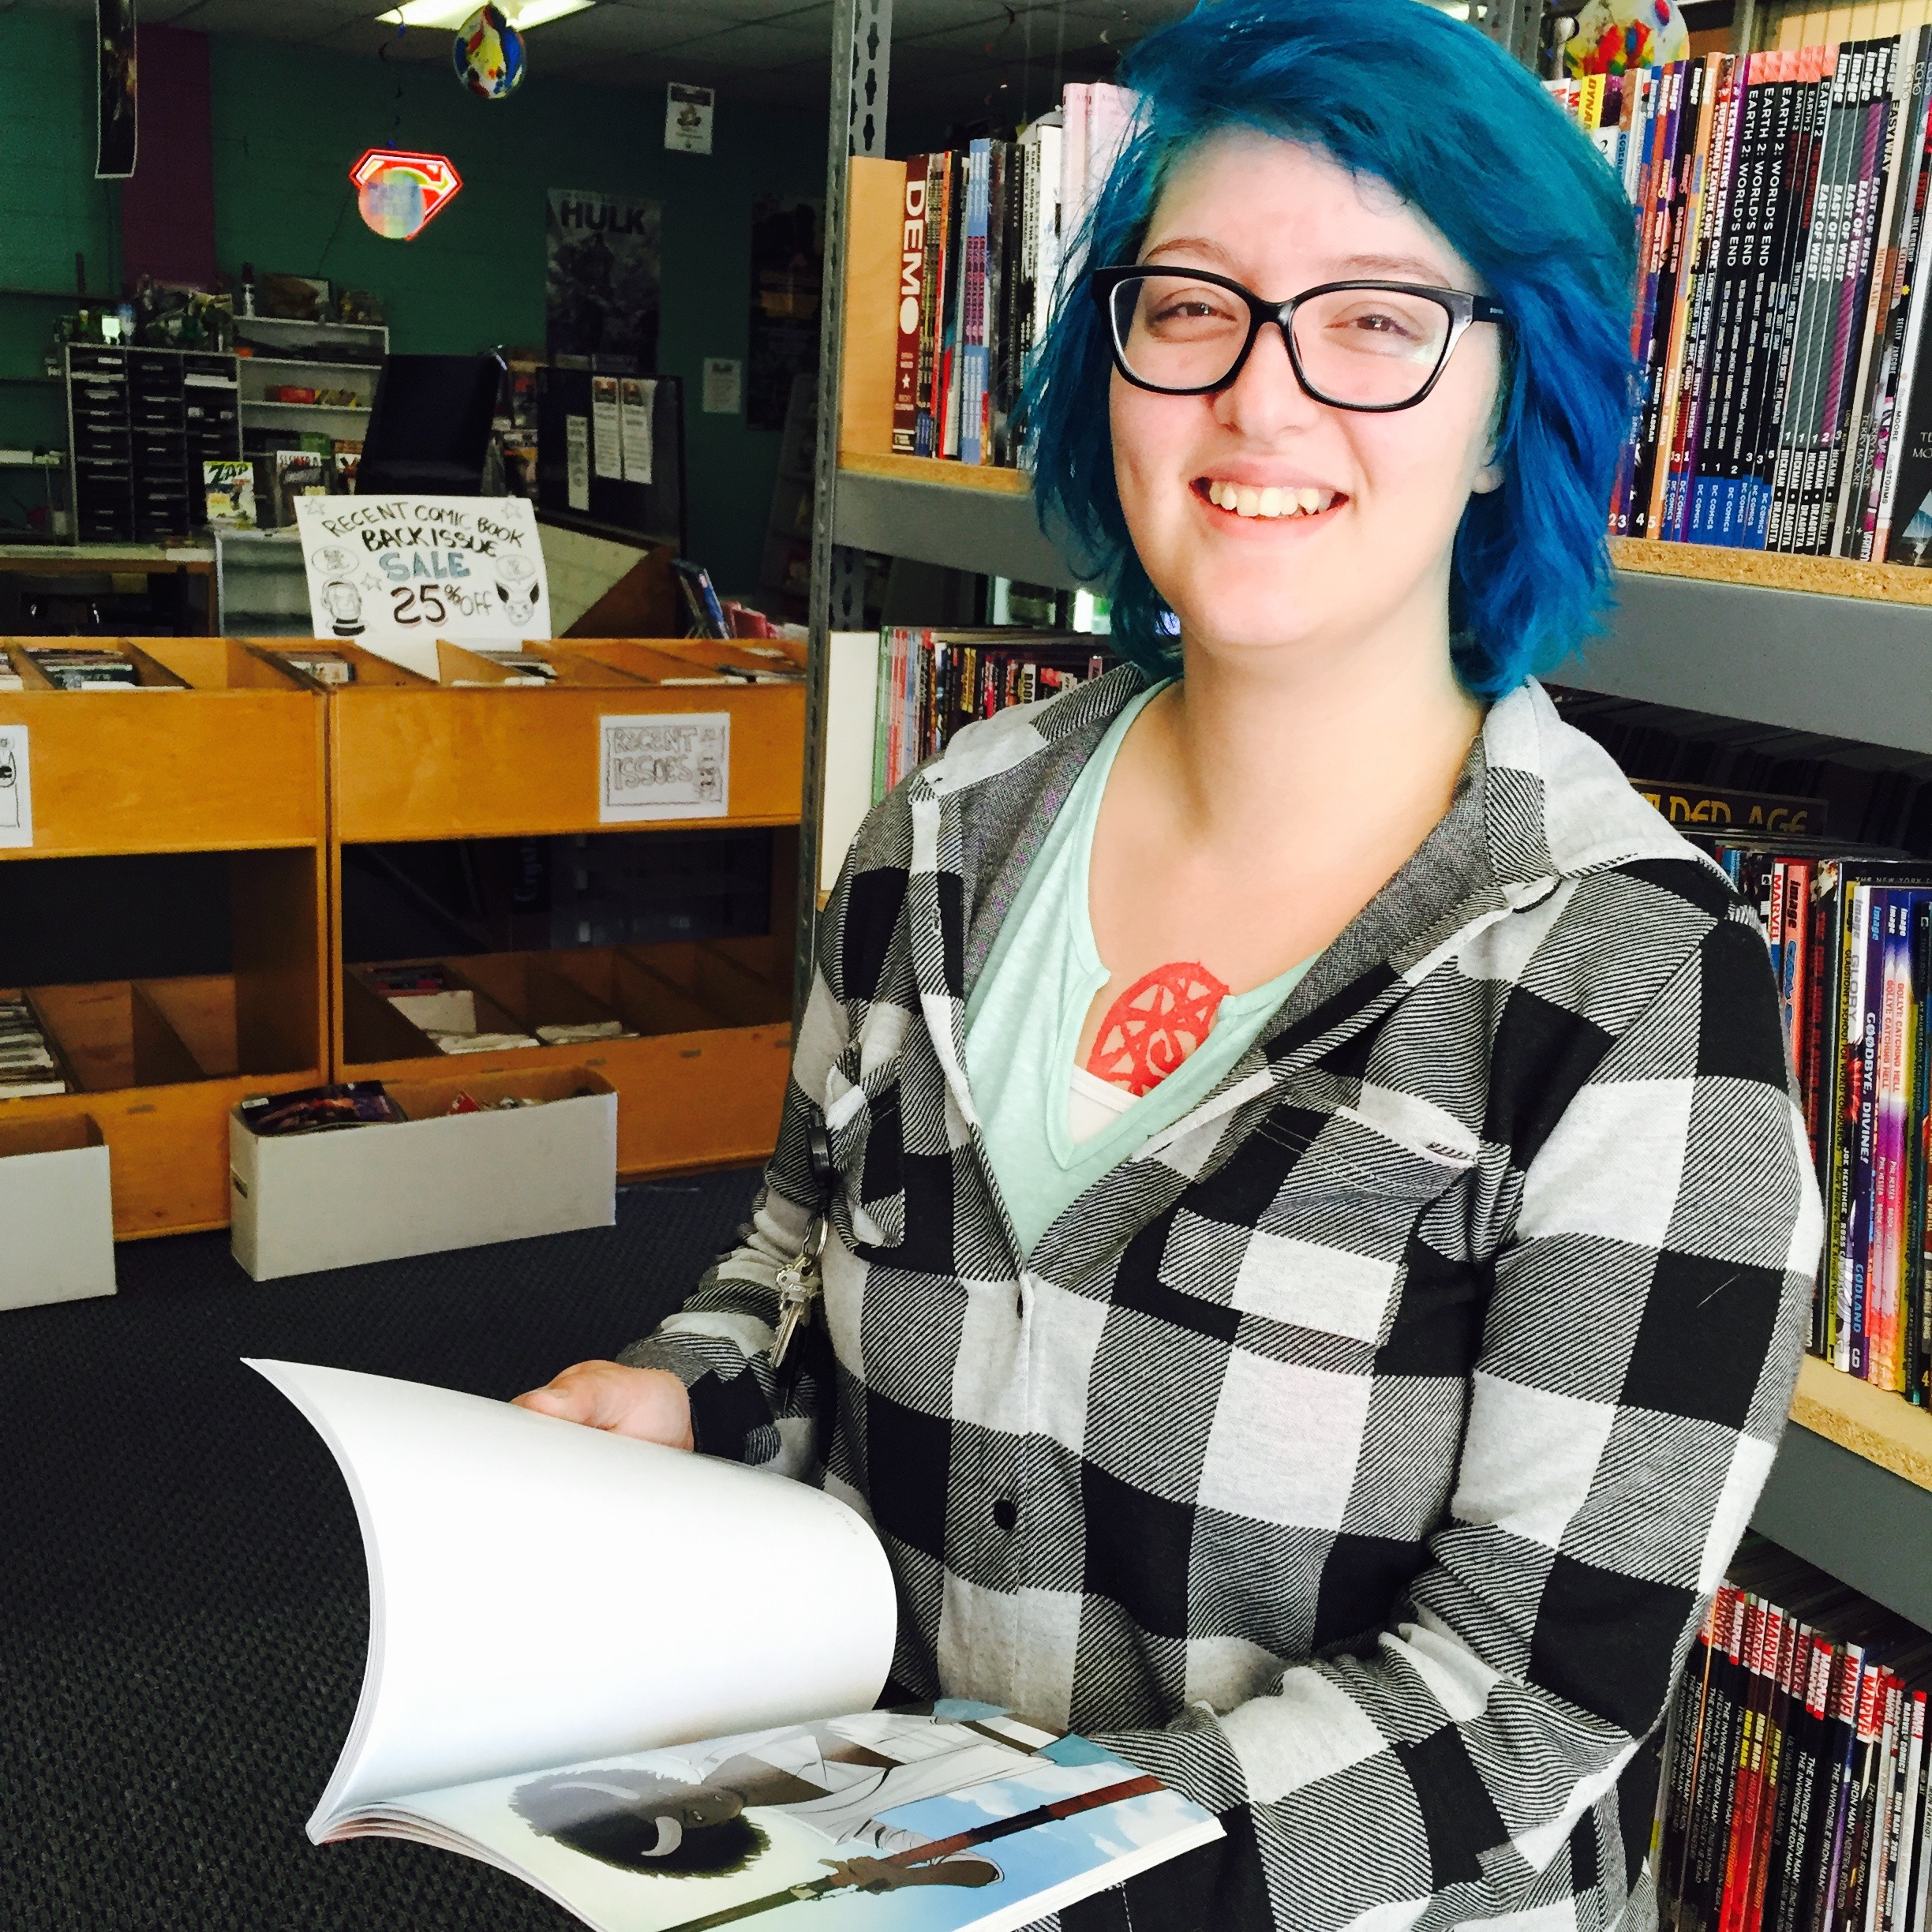 Alex in Santa Rosa: From homeless shelter to comic book store manager